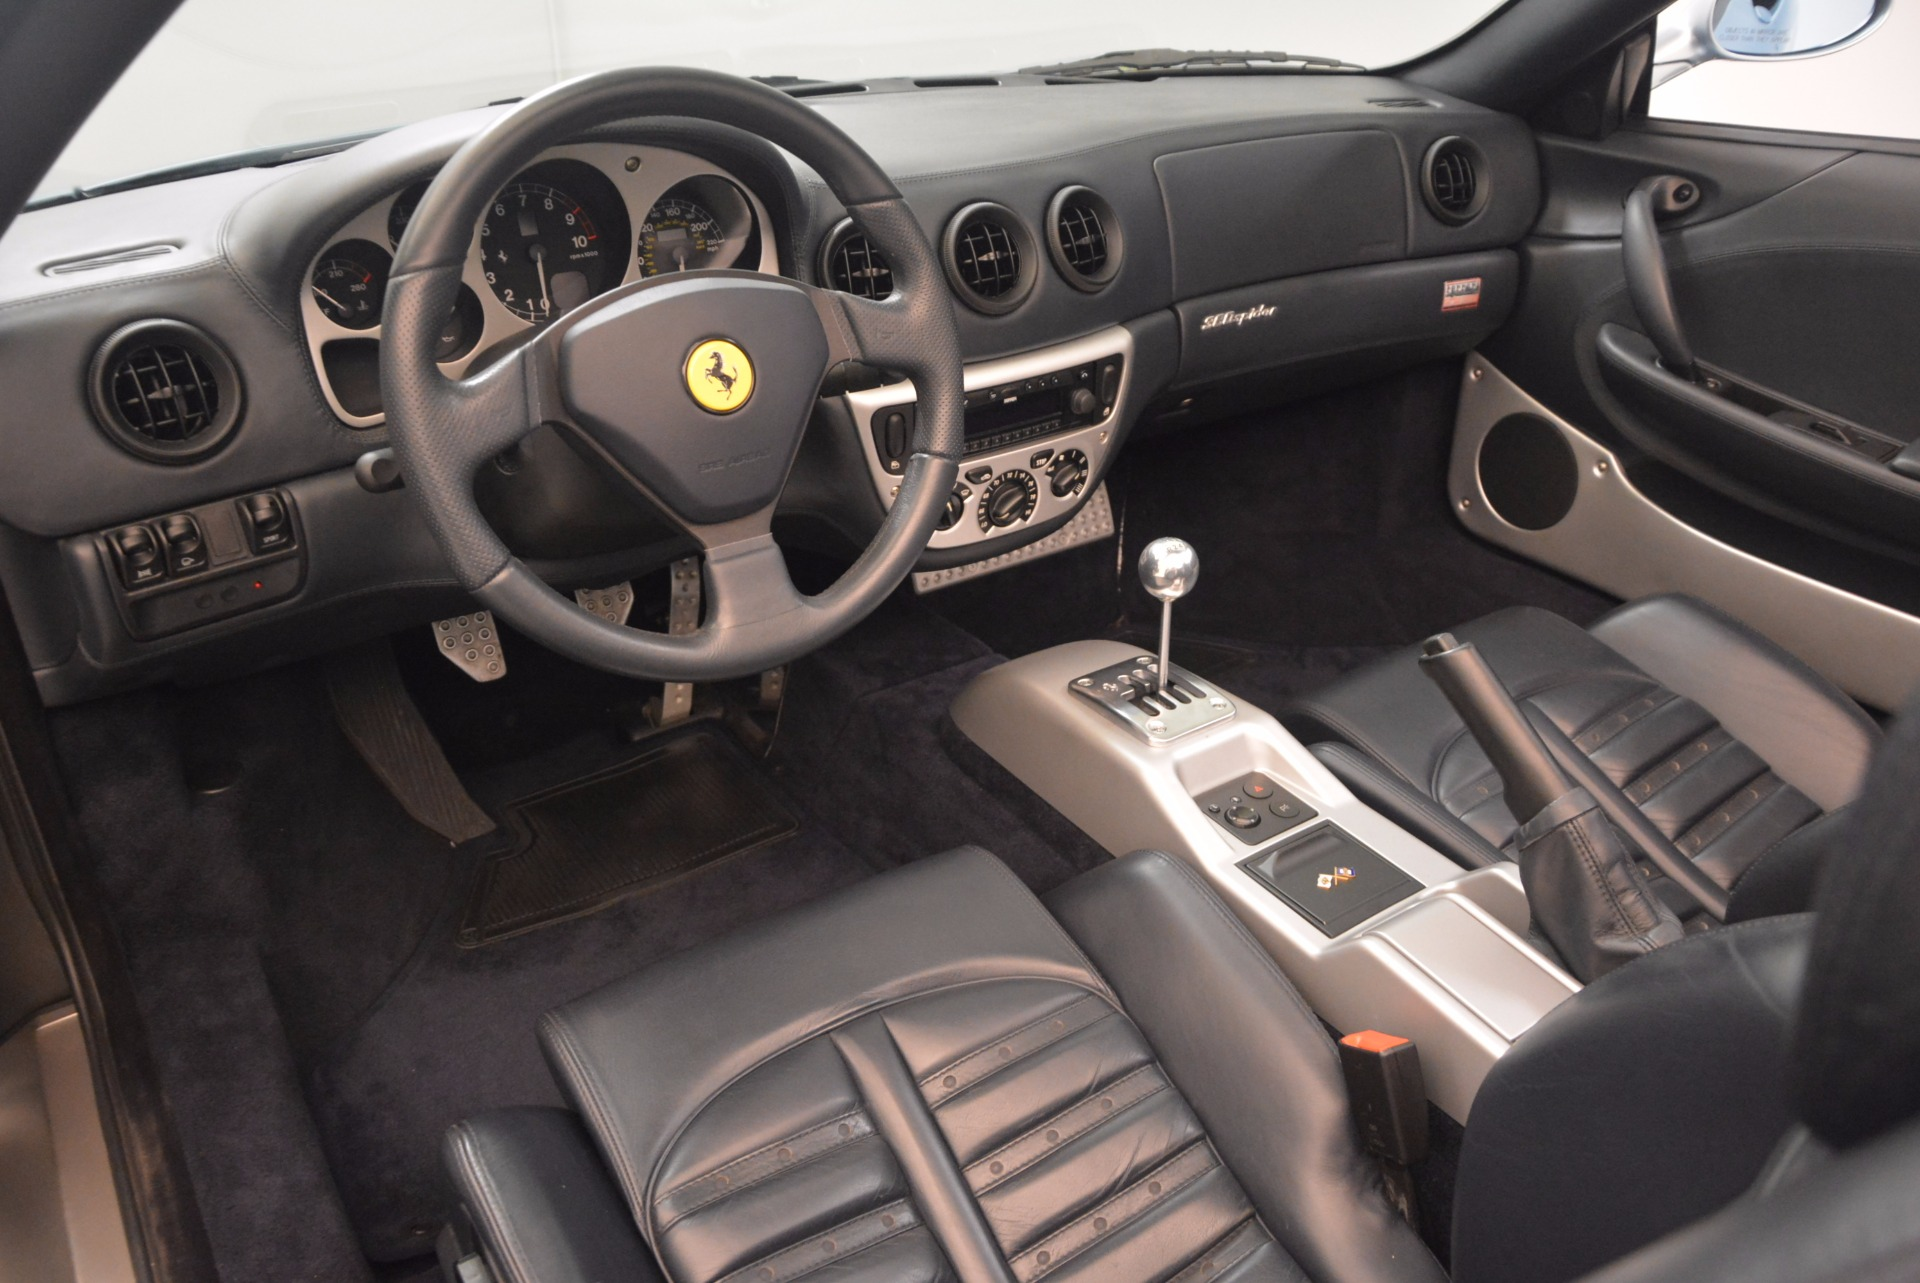 Used 2003 Ferrari 360 Spider 6-Speed Manual For Sale In Greenwich, CT 1445_p25